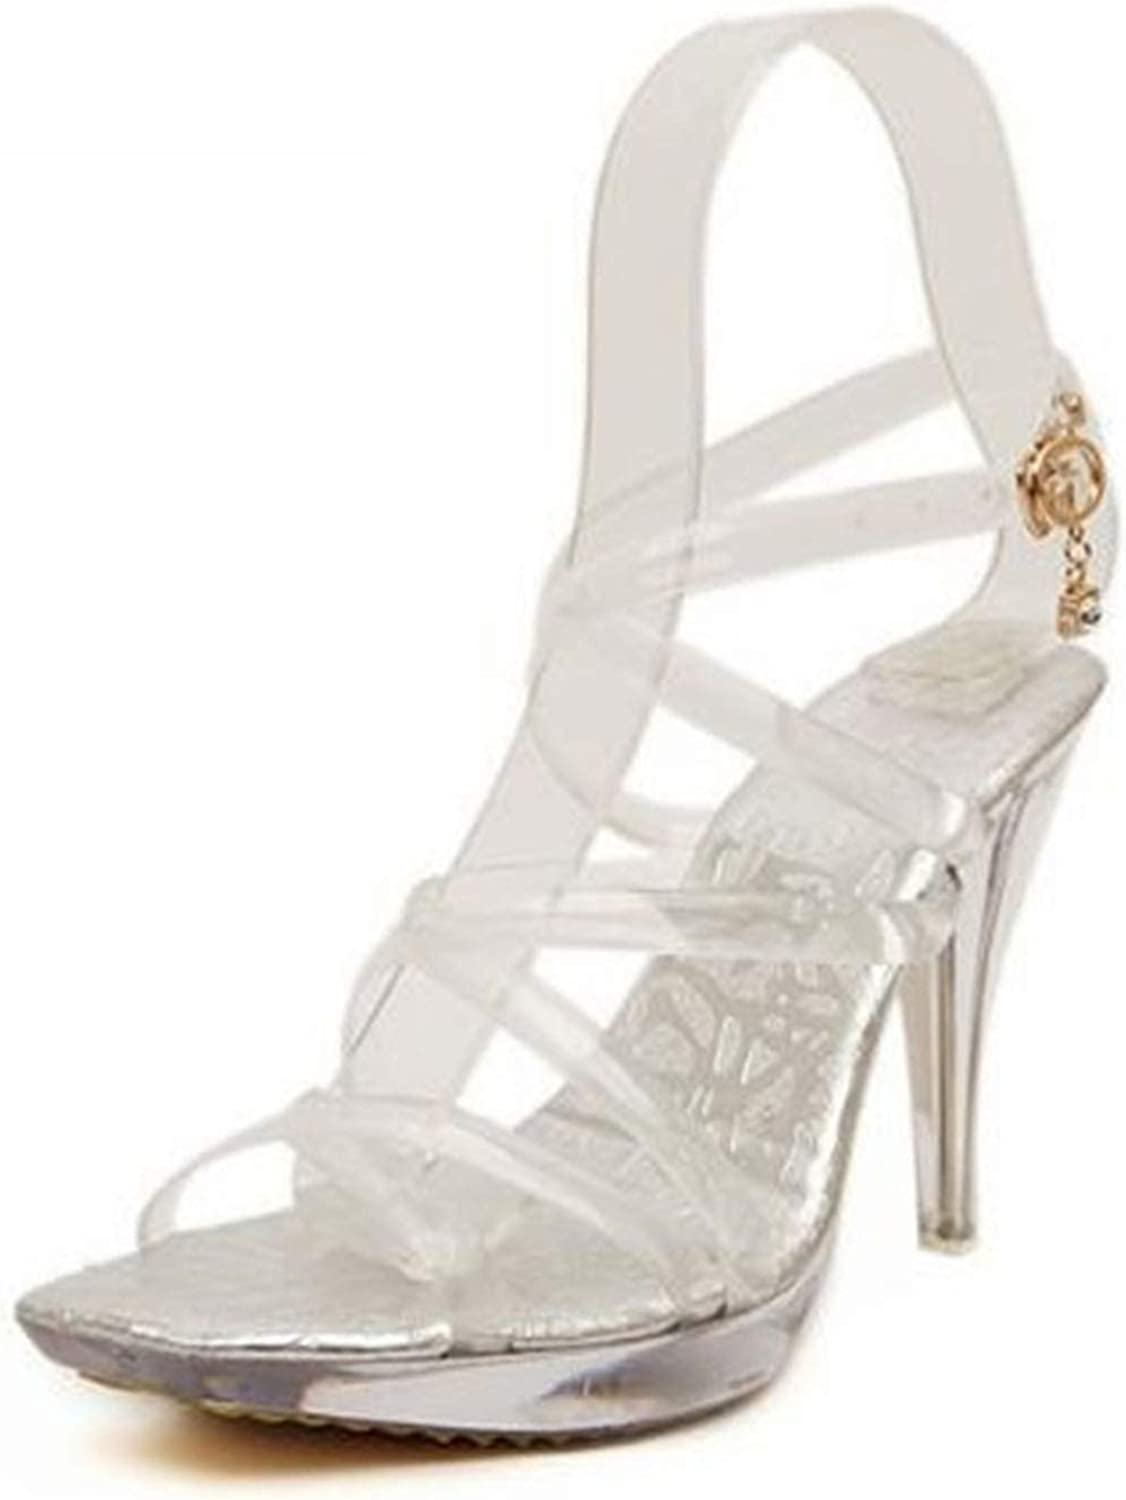 Summer Transparent Crystal Fetish SM shoes Woman 10 cm Thin High Heels Open Toe Sexy Sandals Buckle Narrow Strap Pumps